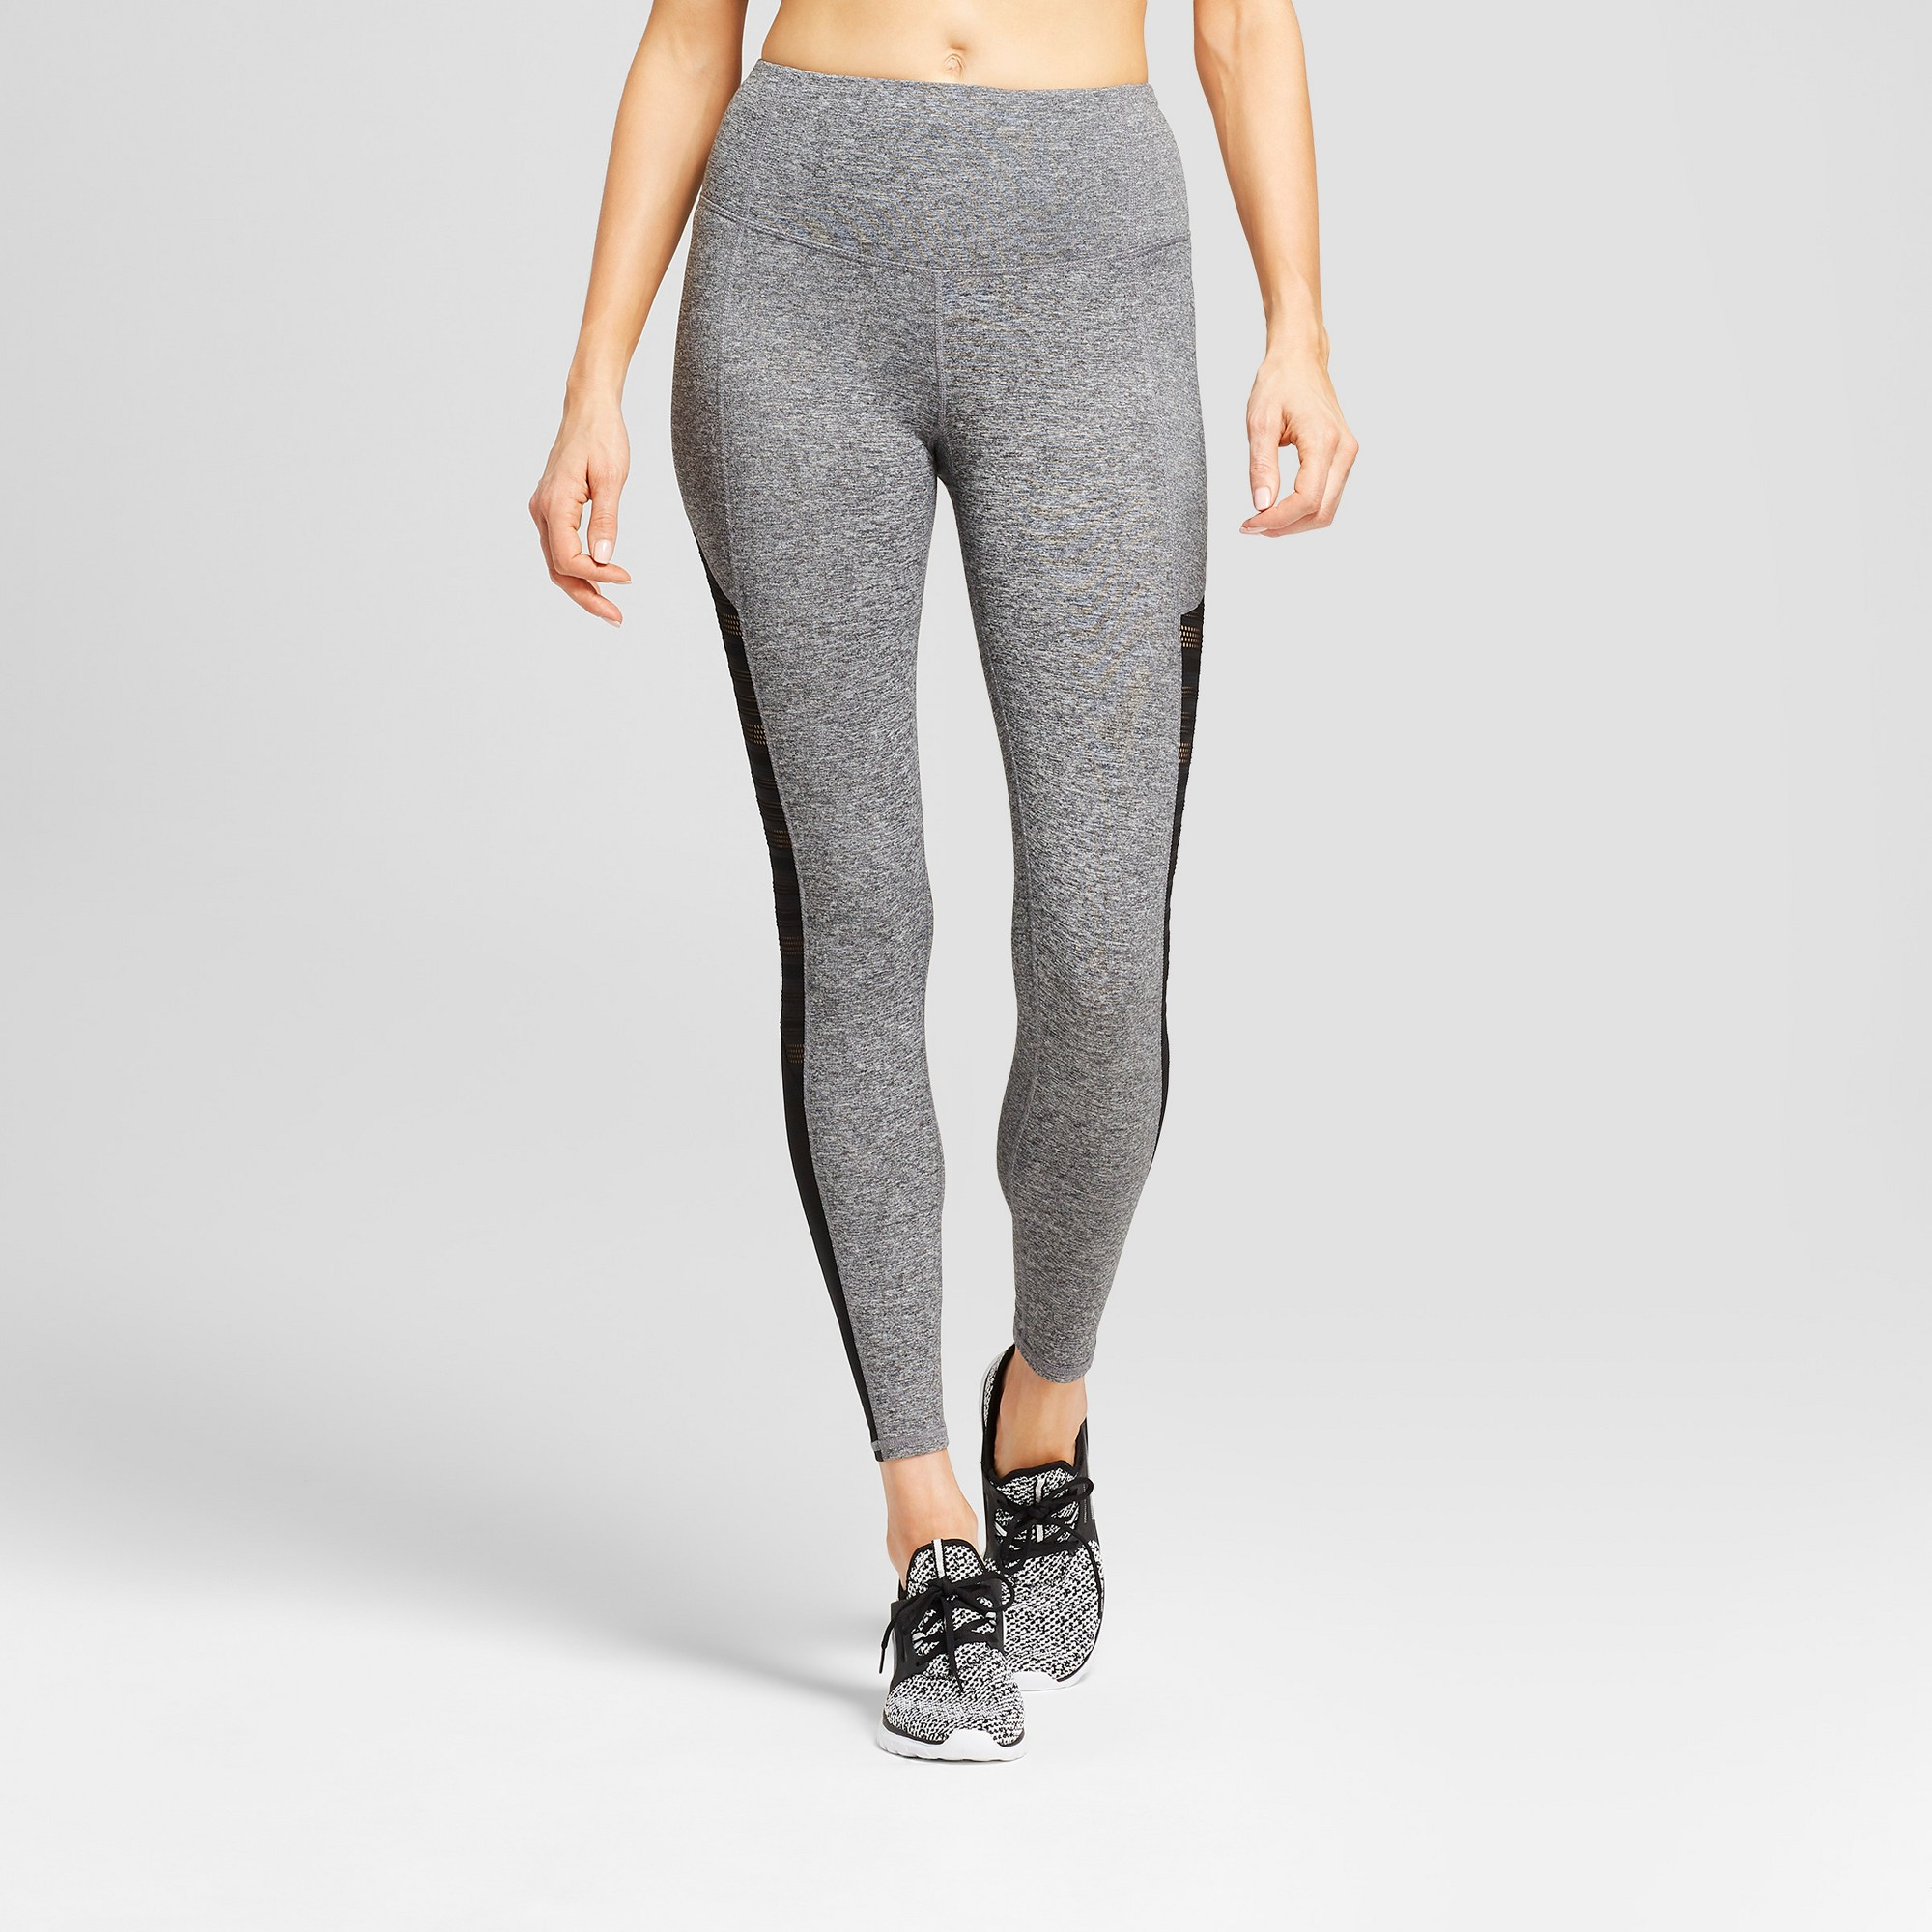 f77539df80a71e Women's Freedom High-Waist Mesh Insert Leggings - C9 Champion Dark Heather  Gray Xxl